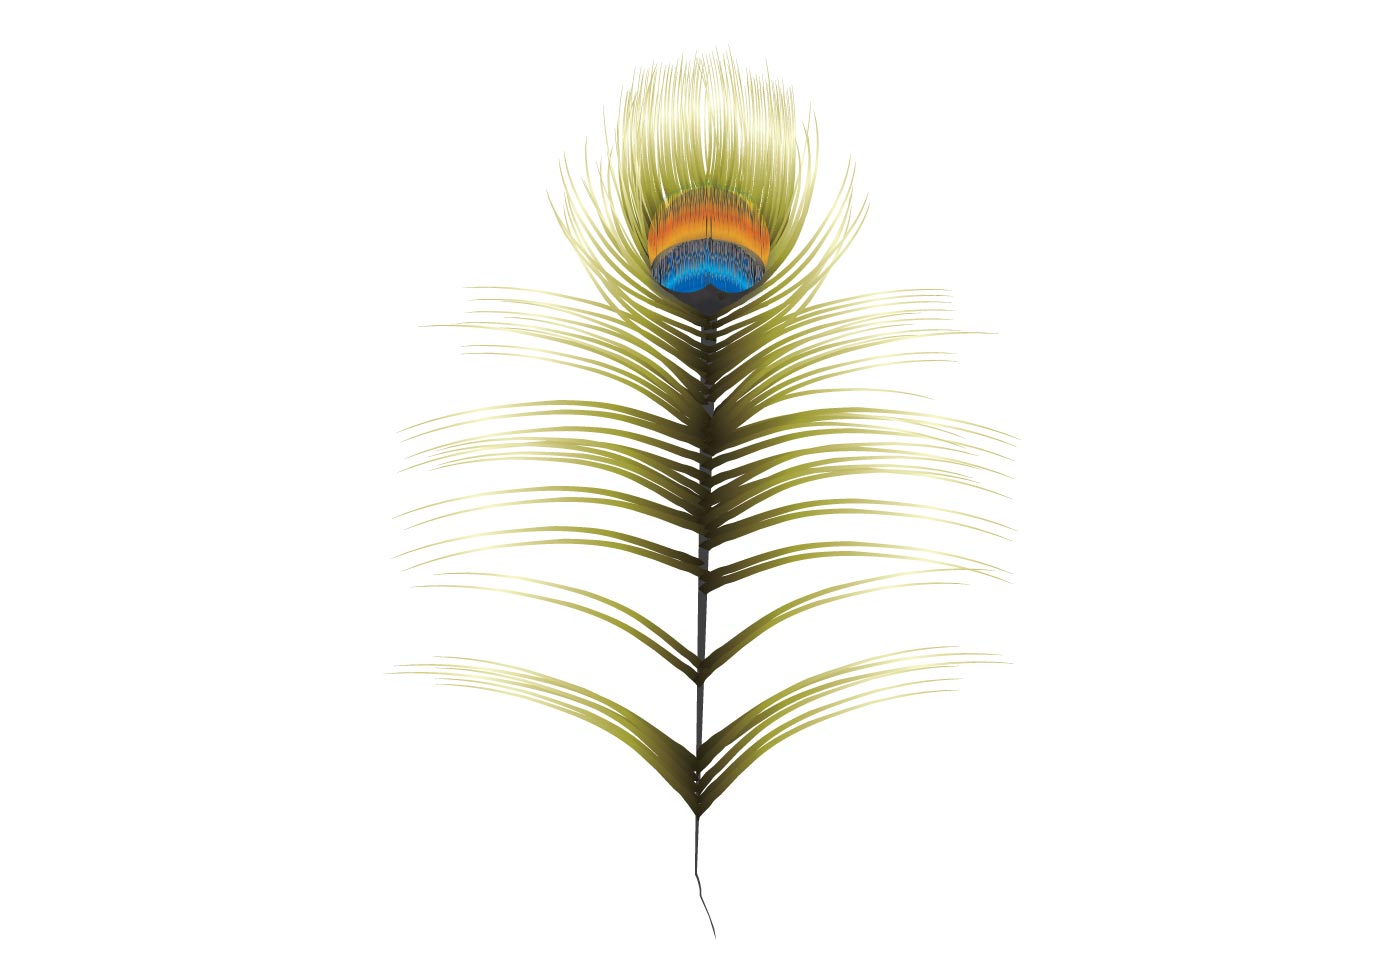 Peacock Feather - Download Free Vector Art, Stock Graphics ...